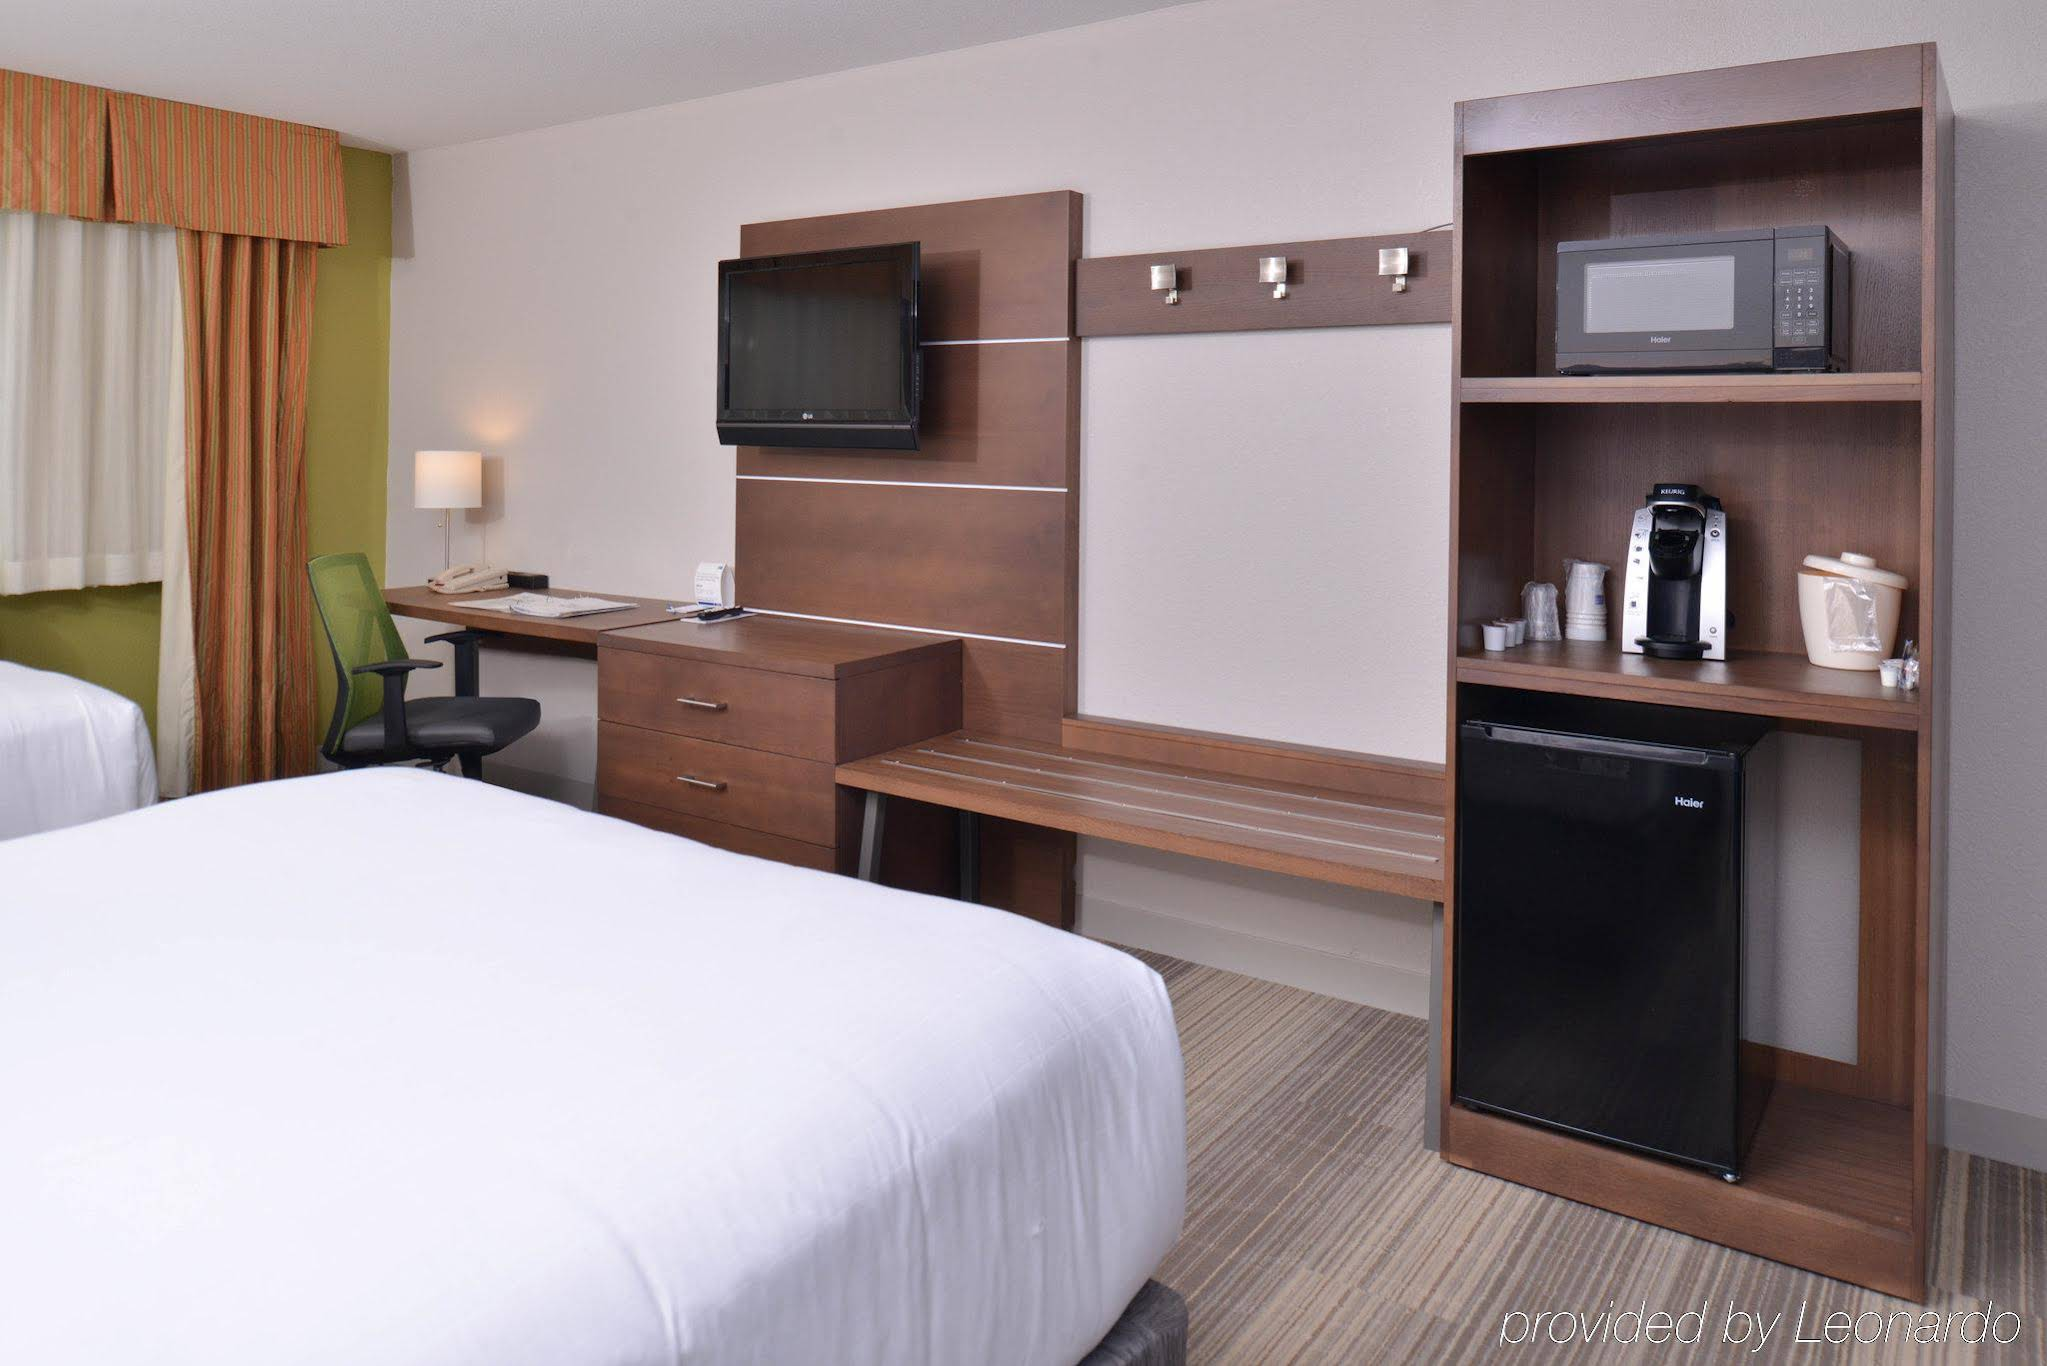 Holiday Inn Express and Suites Stevens Point